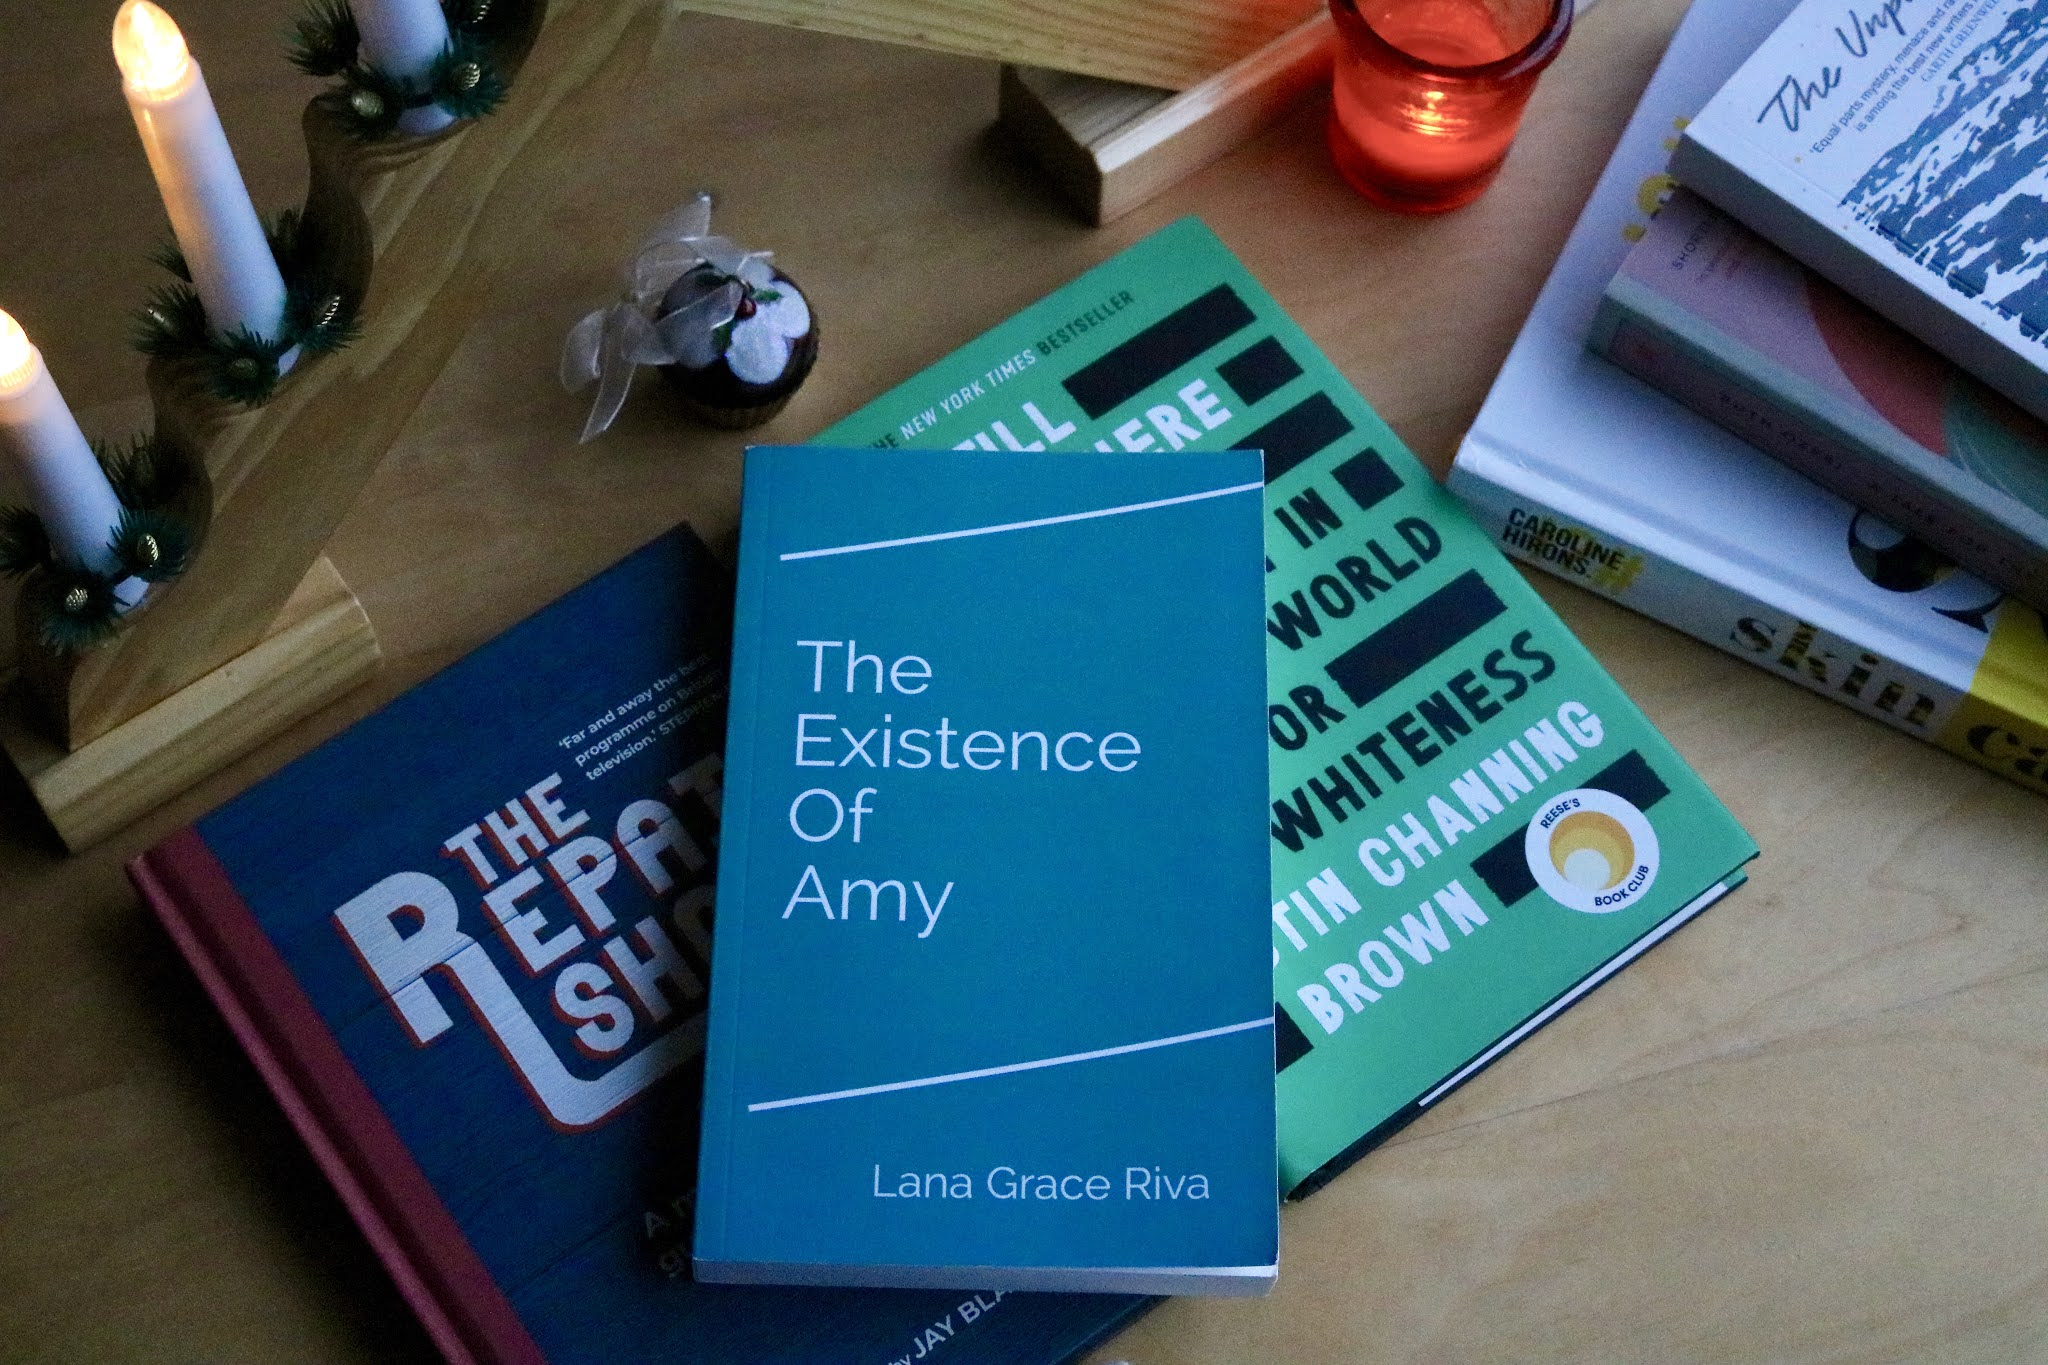 THE EXISTENCE OF AMY BY LANA GRACE RIVA BOOK